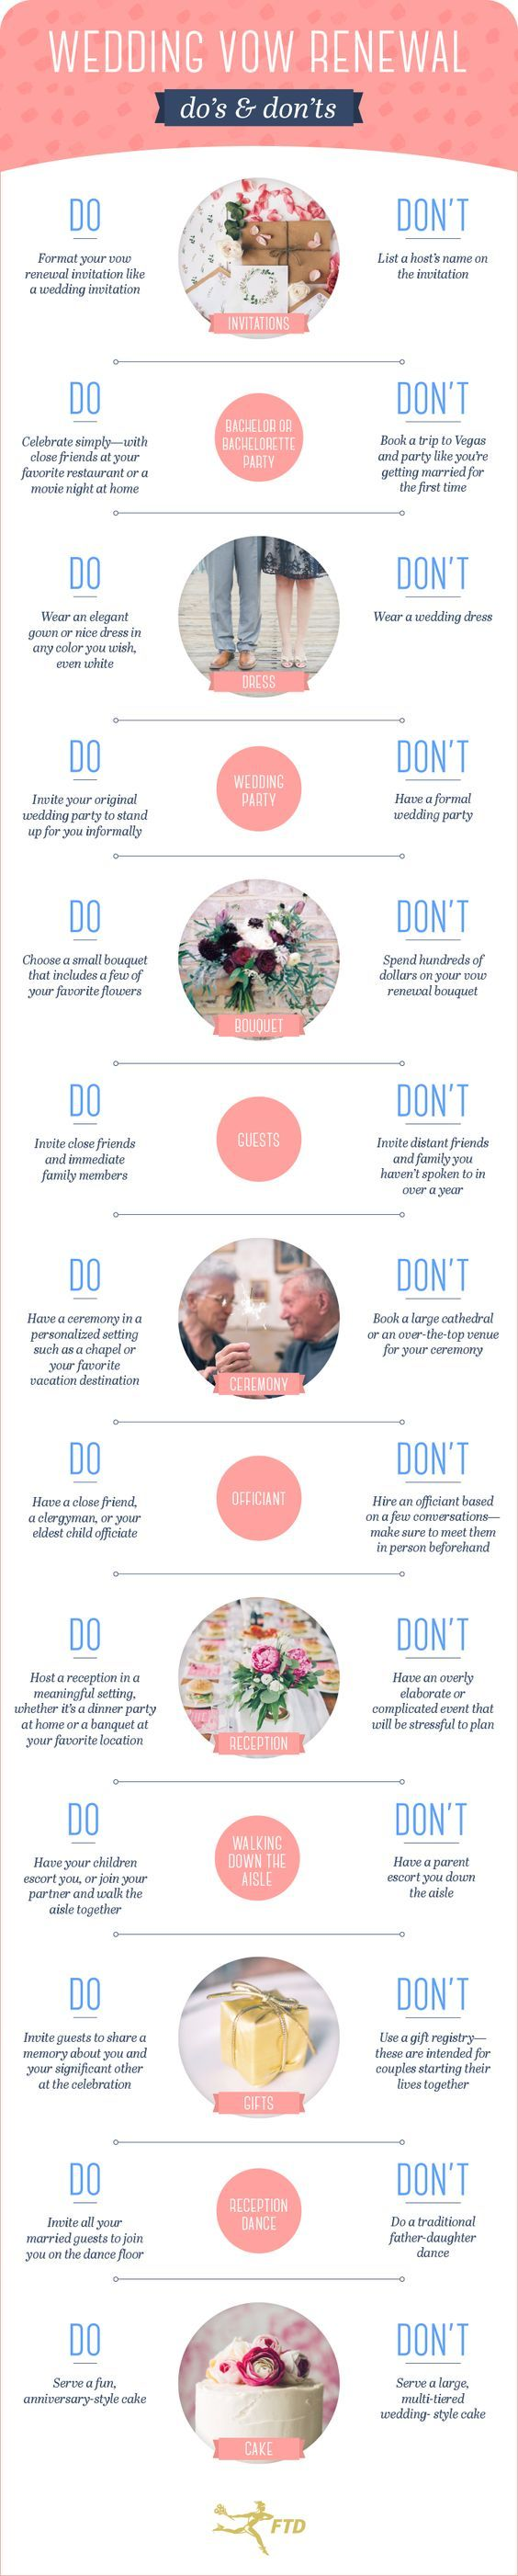 Vow Renewal Guide 17 Rules and Tips To Follow Wedding